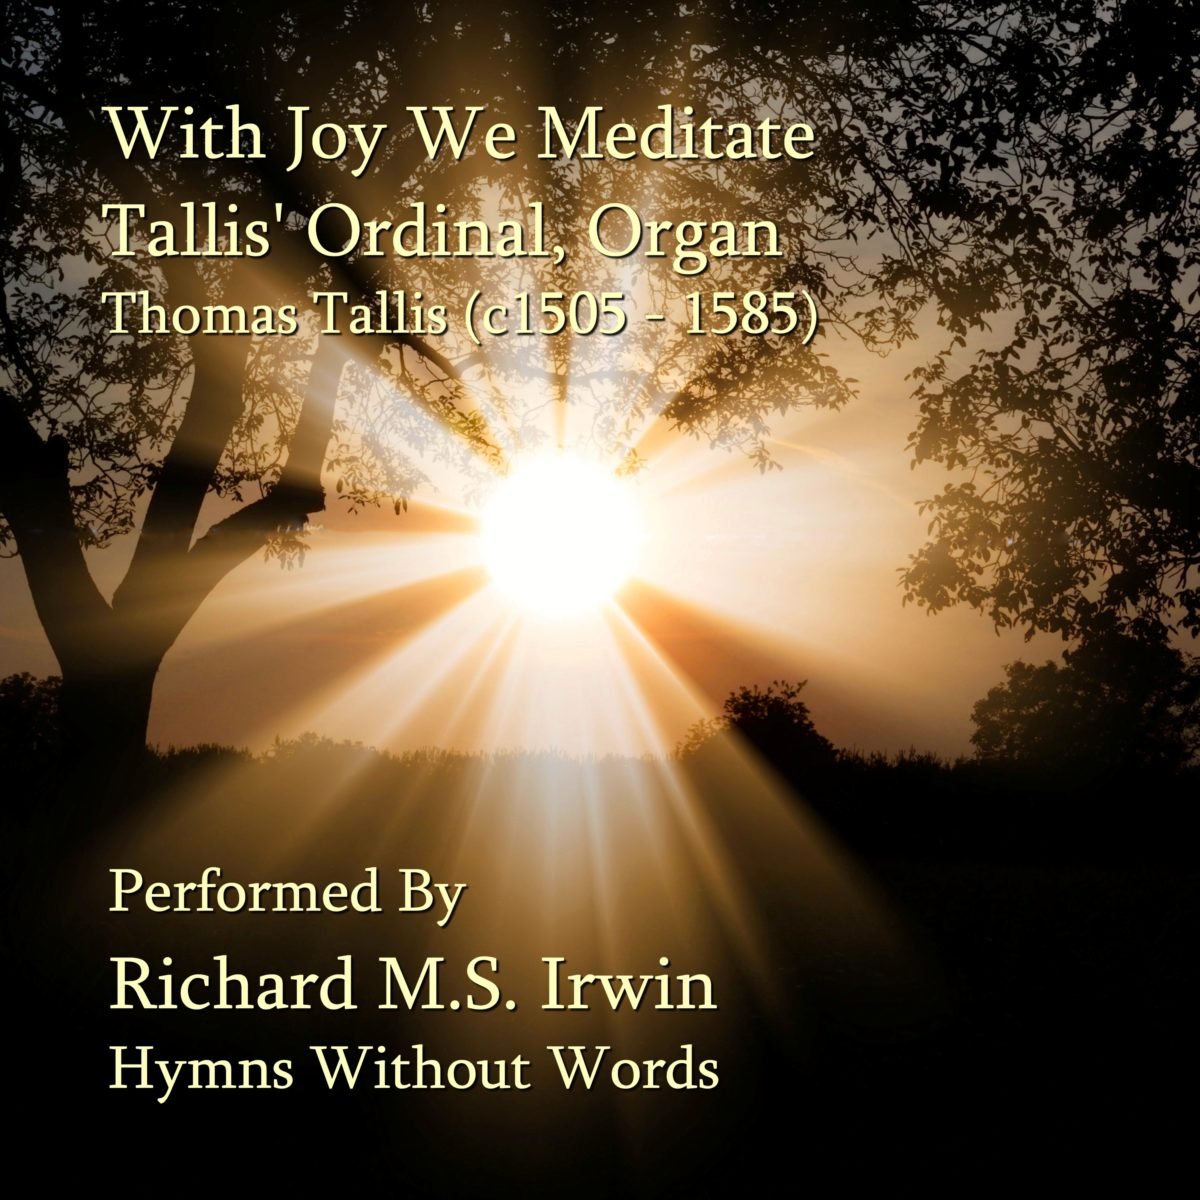 With Joy We Meditate The Grace (Tallis' Ordinal, Organ, 5 Verses)